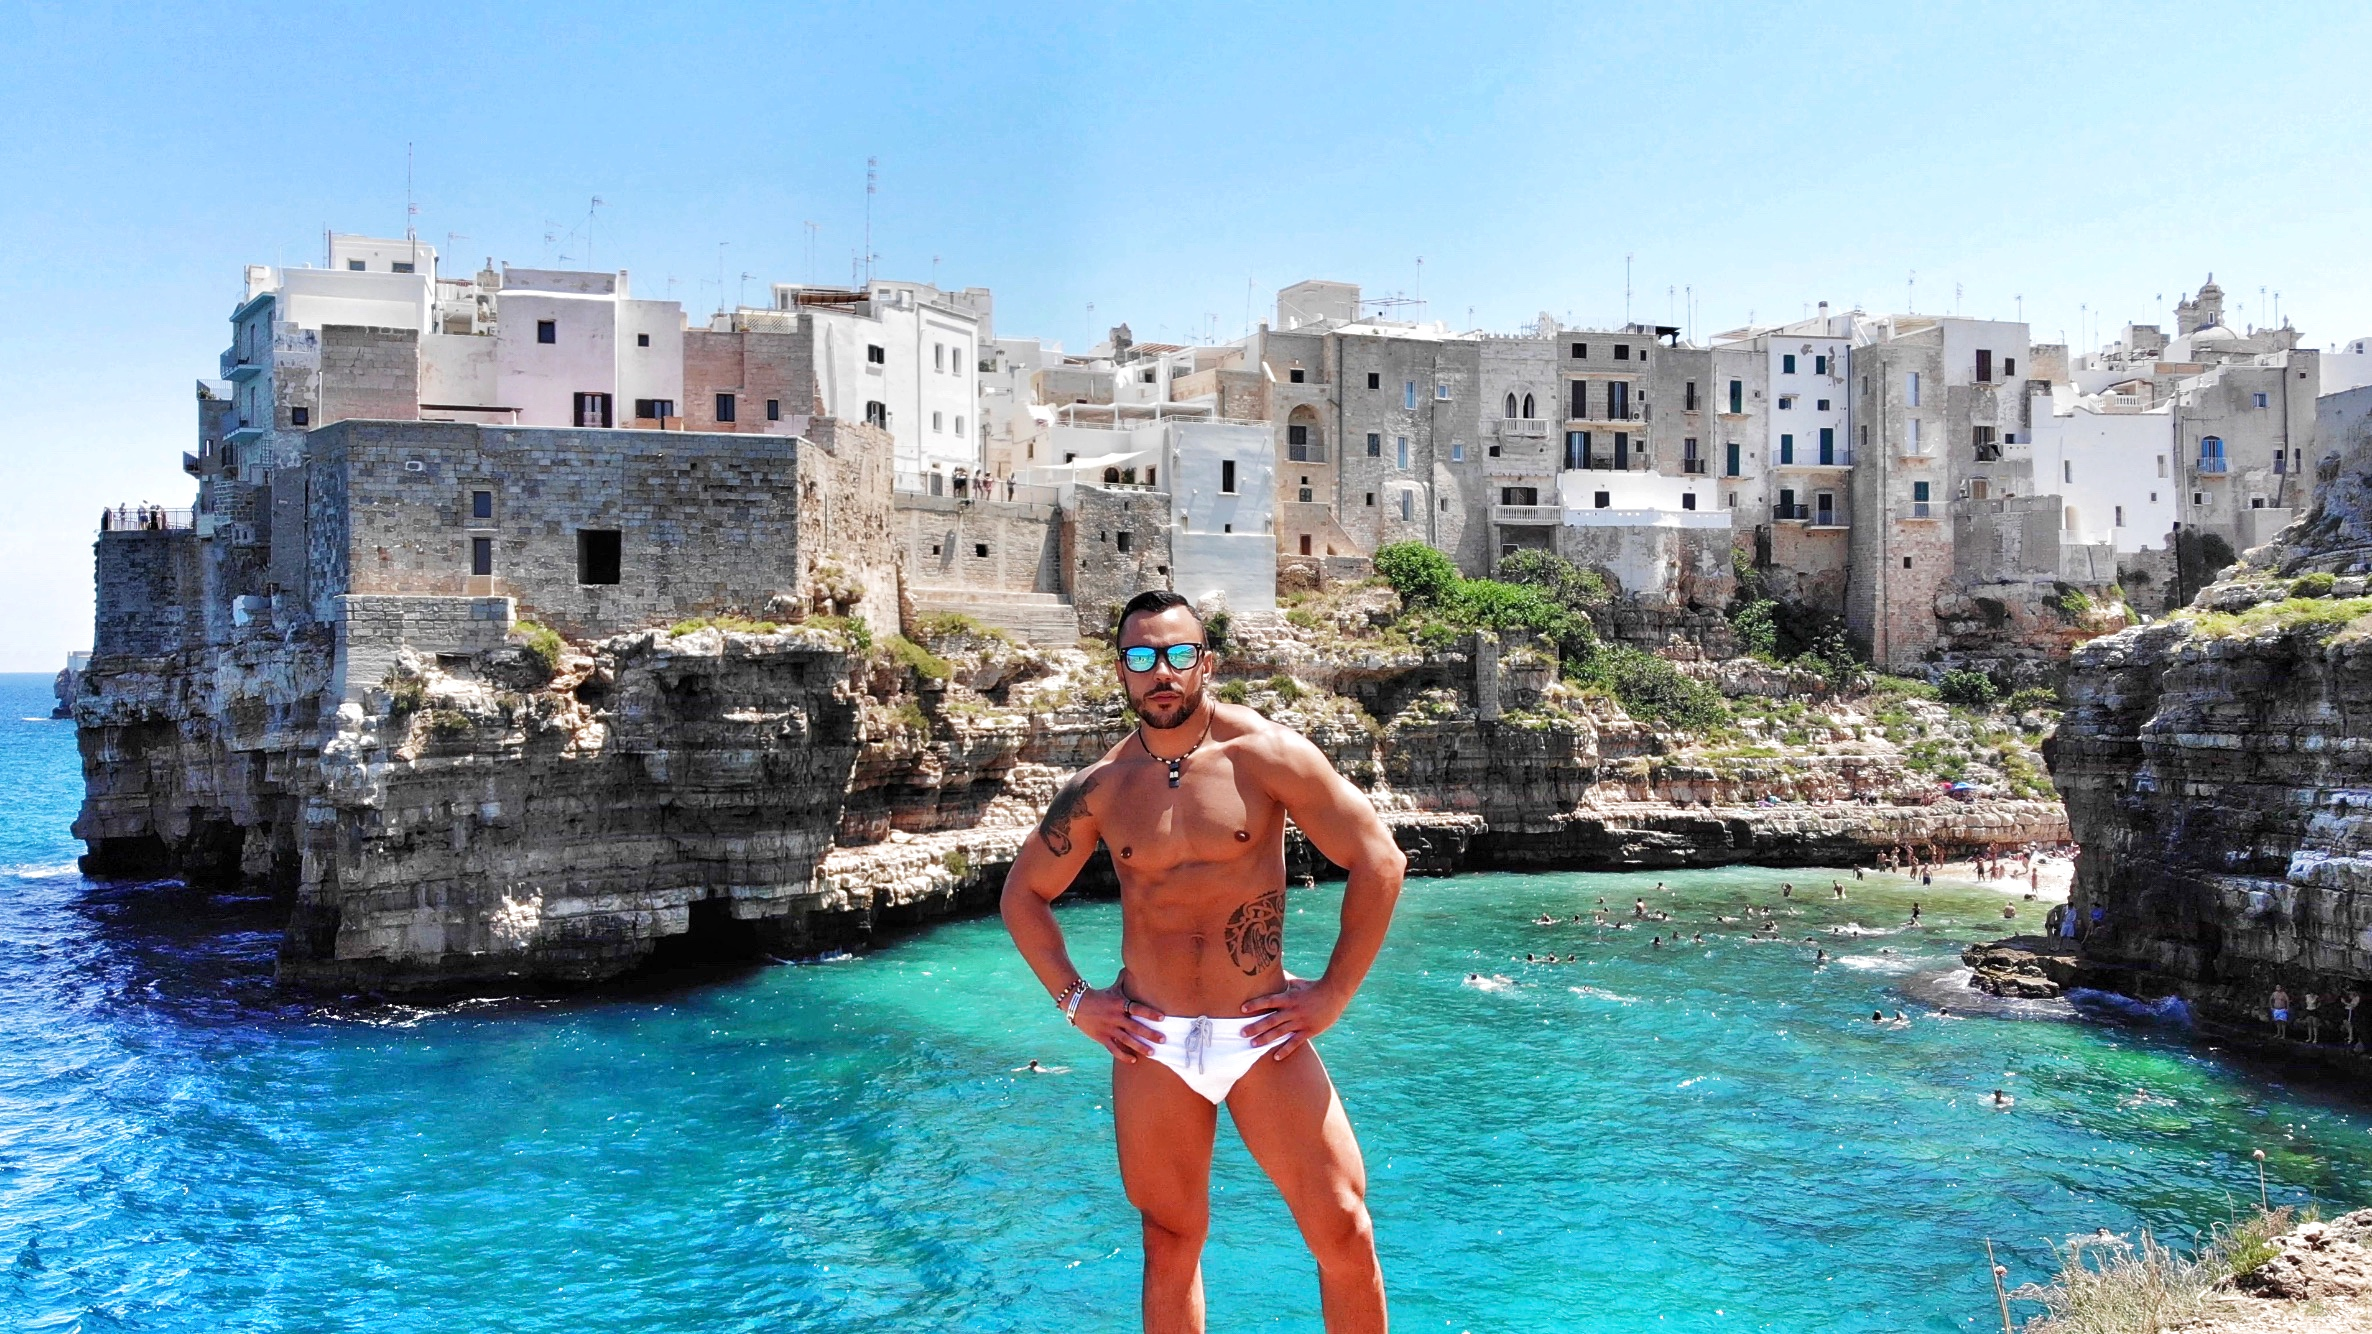 Gay Puglia - the Big Gay Podcast from Puglia definitive guide.